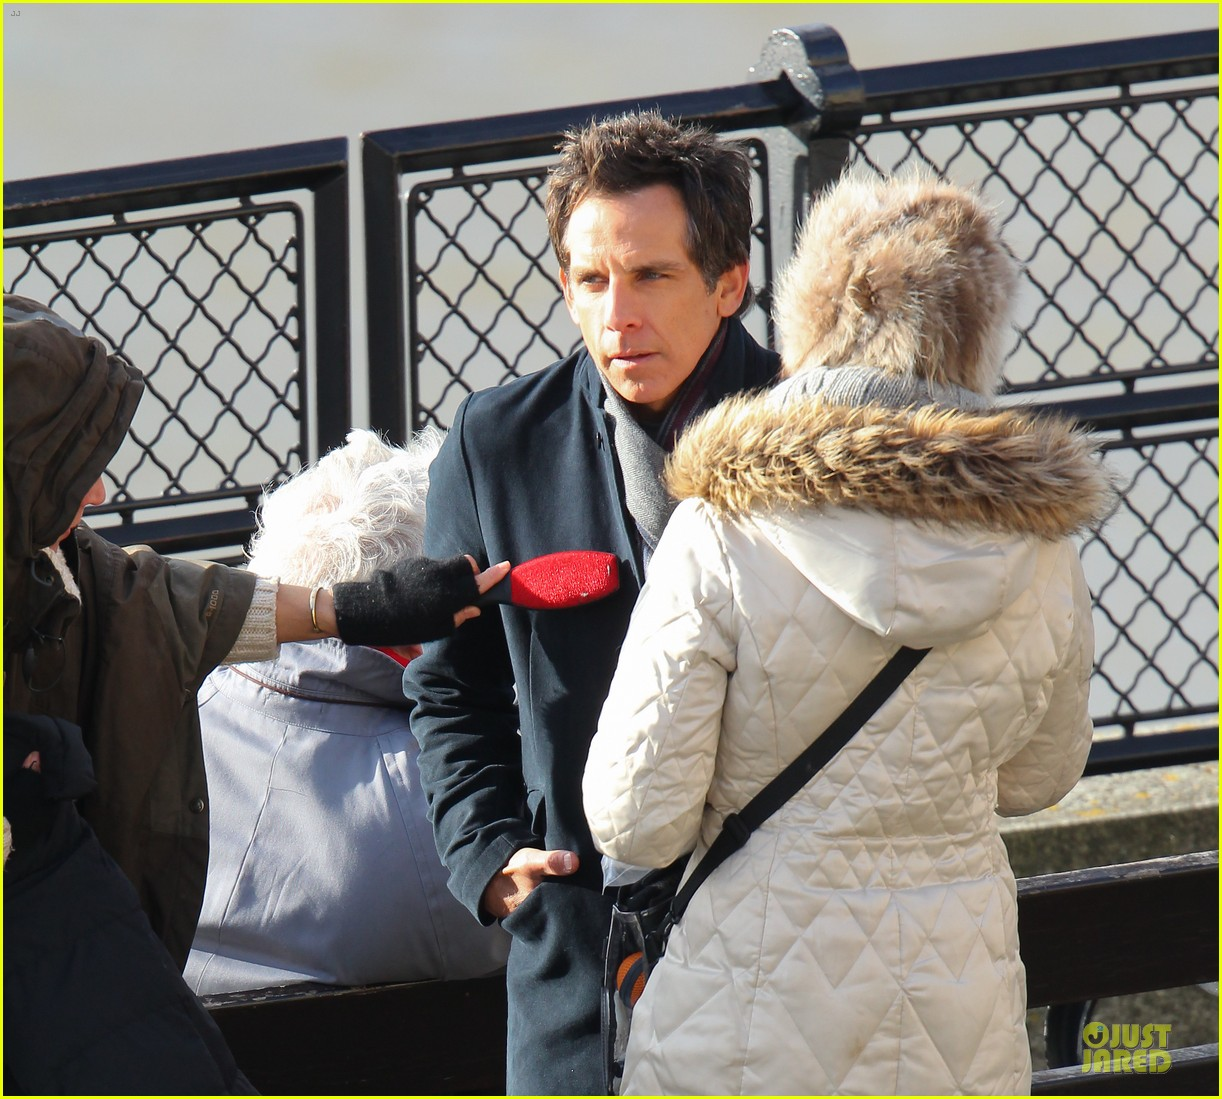 ben stiller chilly night at the museum 3 scenes with skyler gisondo 073047252